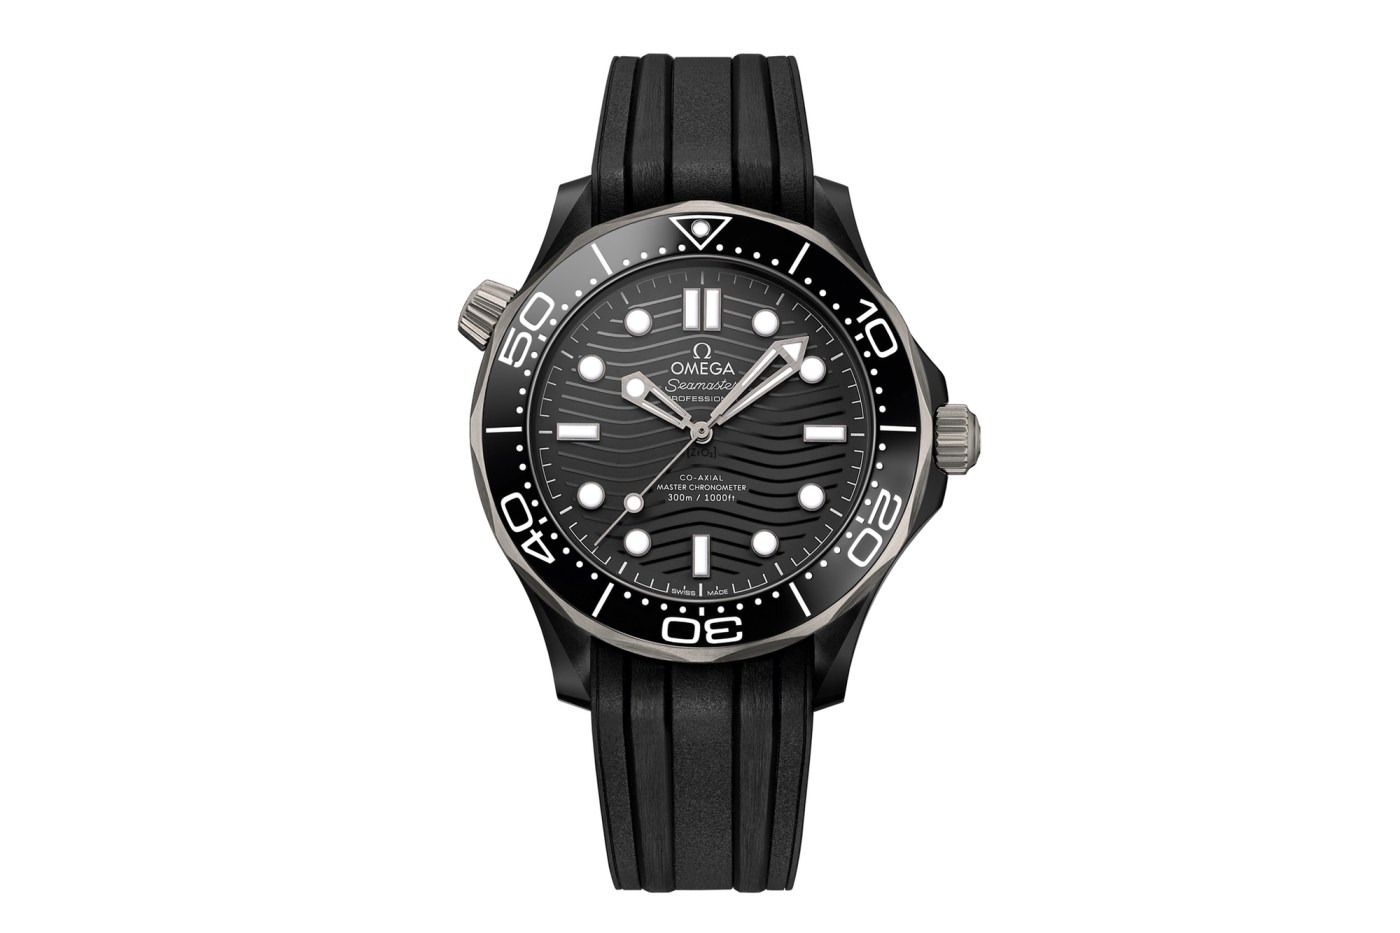 Omega Seamaster Diver 300M Black Ceramic and Titanium